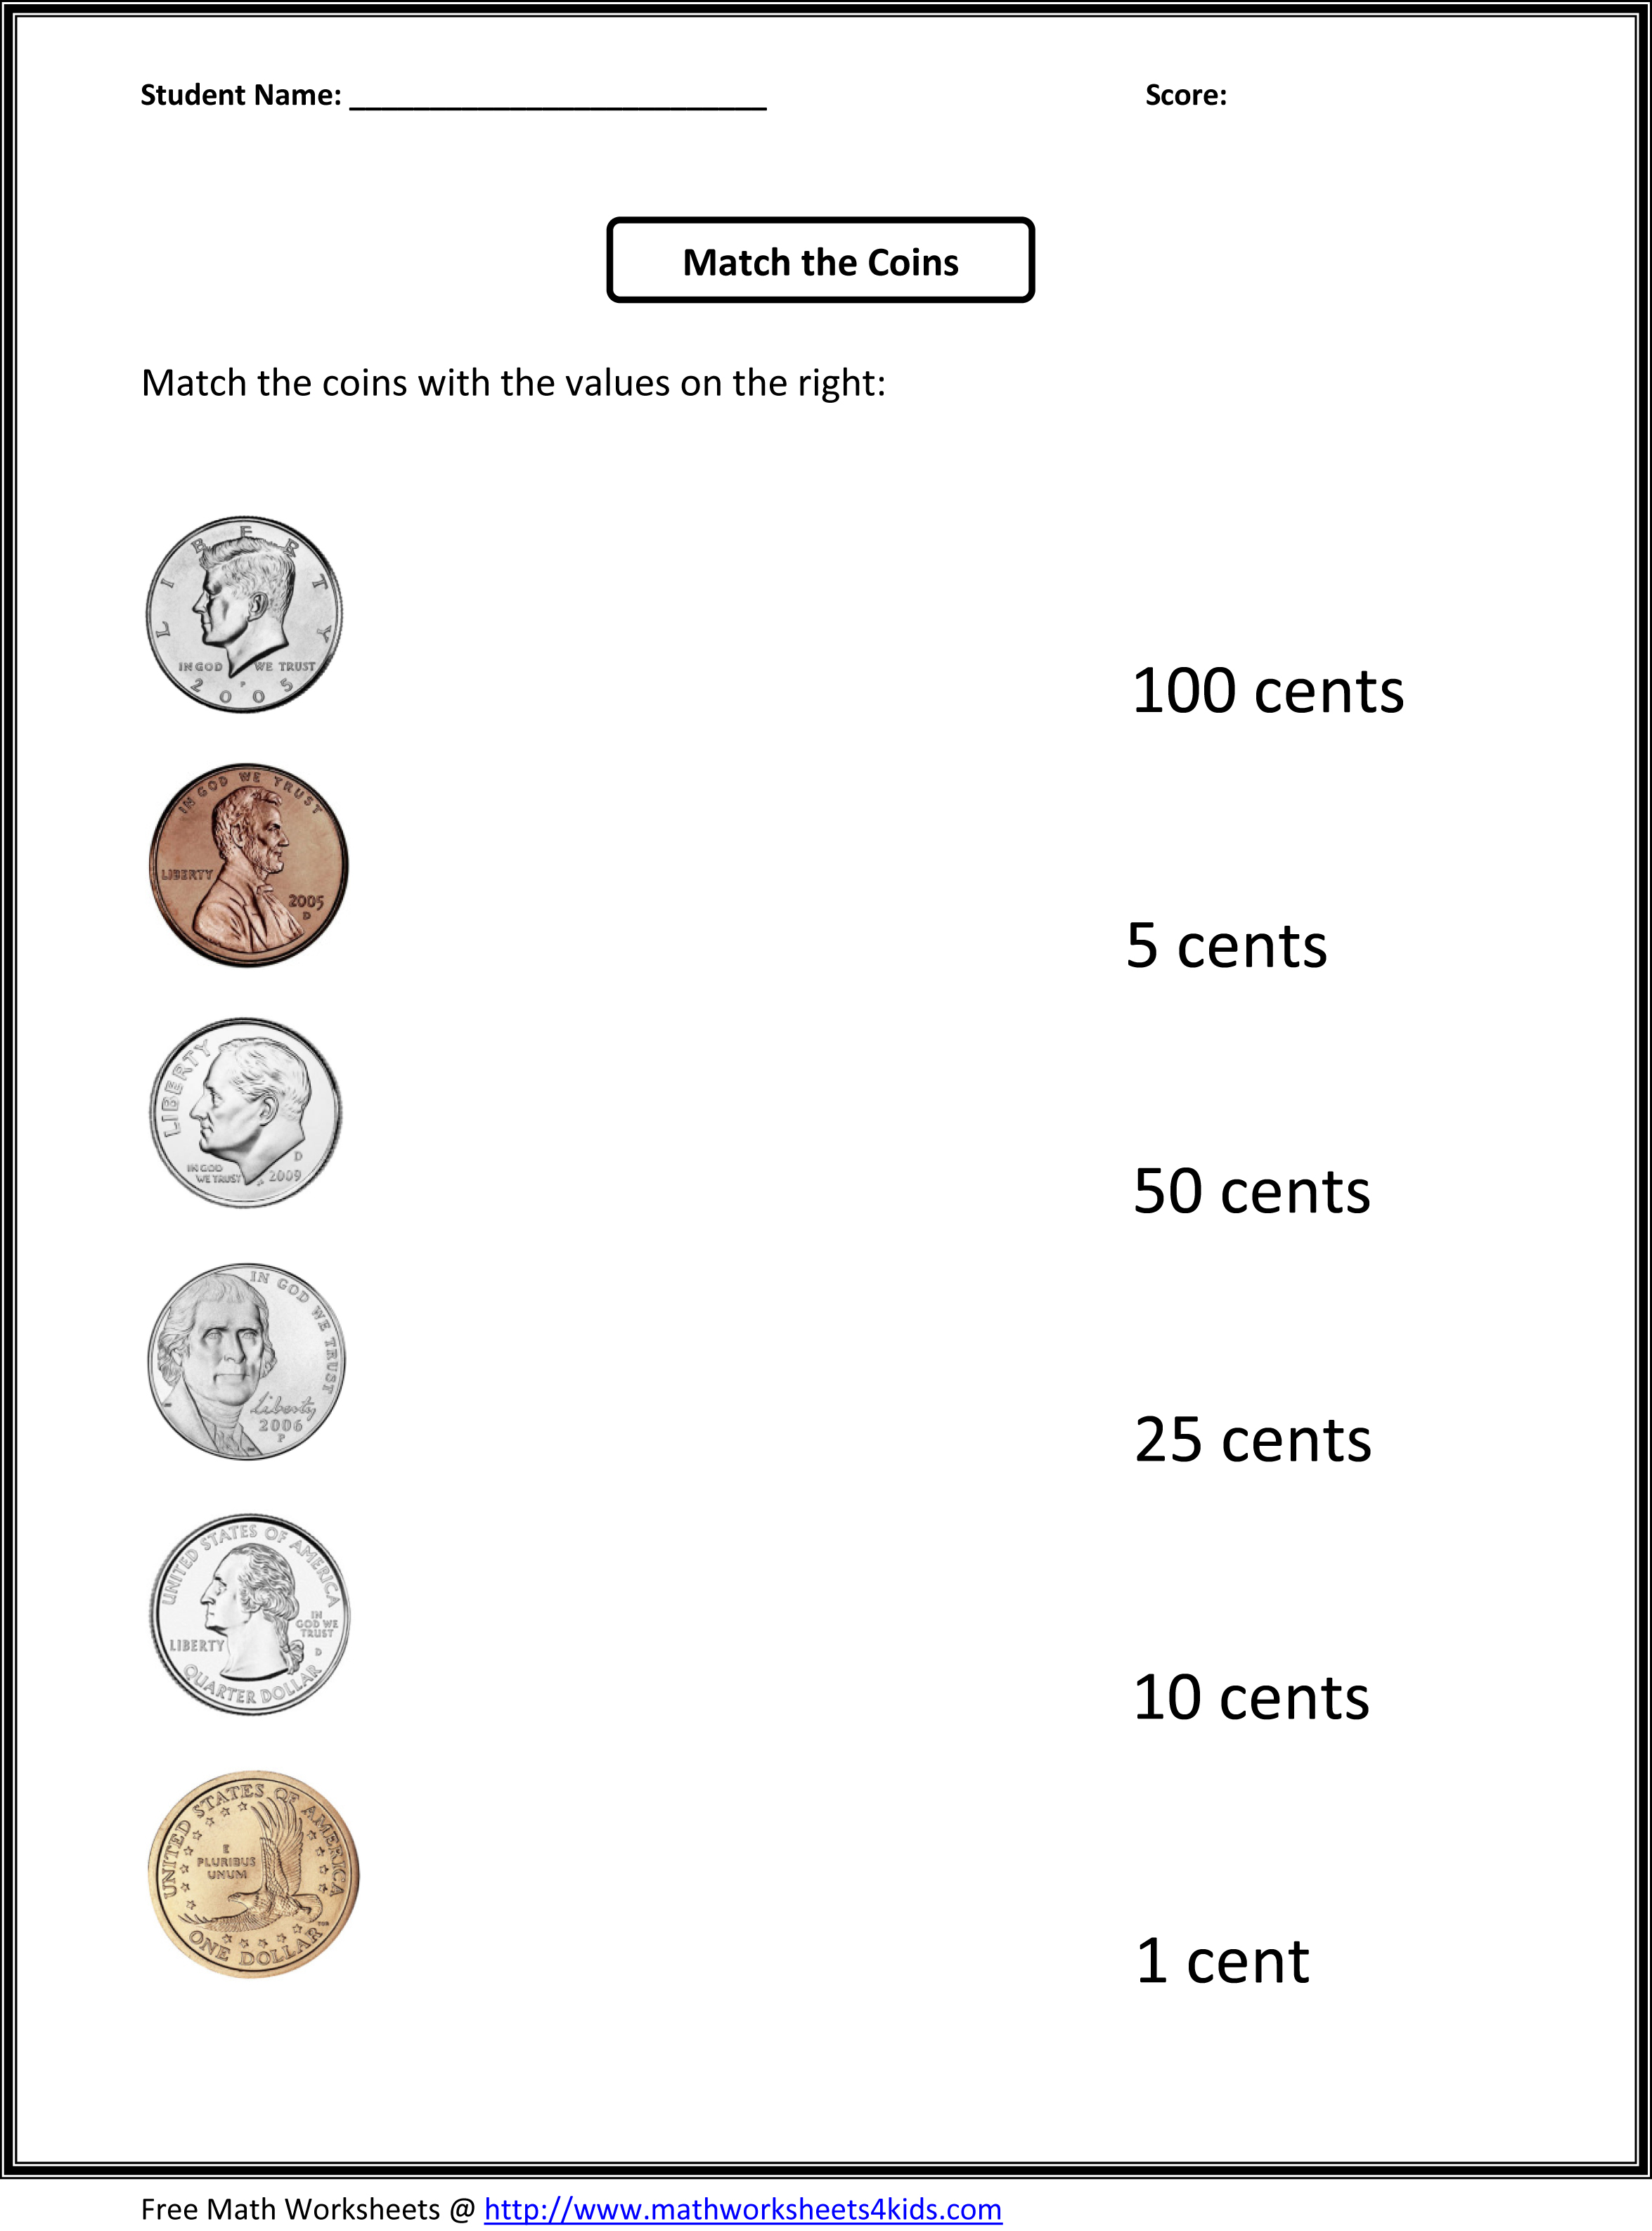 Coin Identification Worksheet For Kids Zikepi85